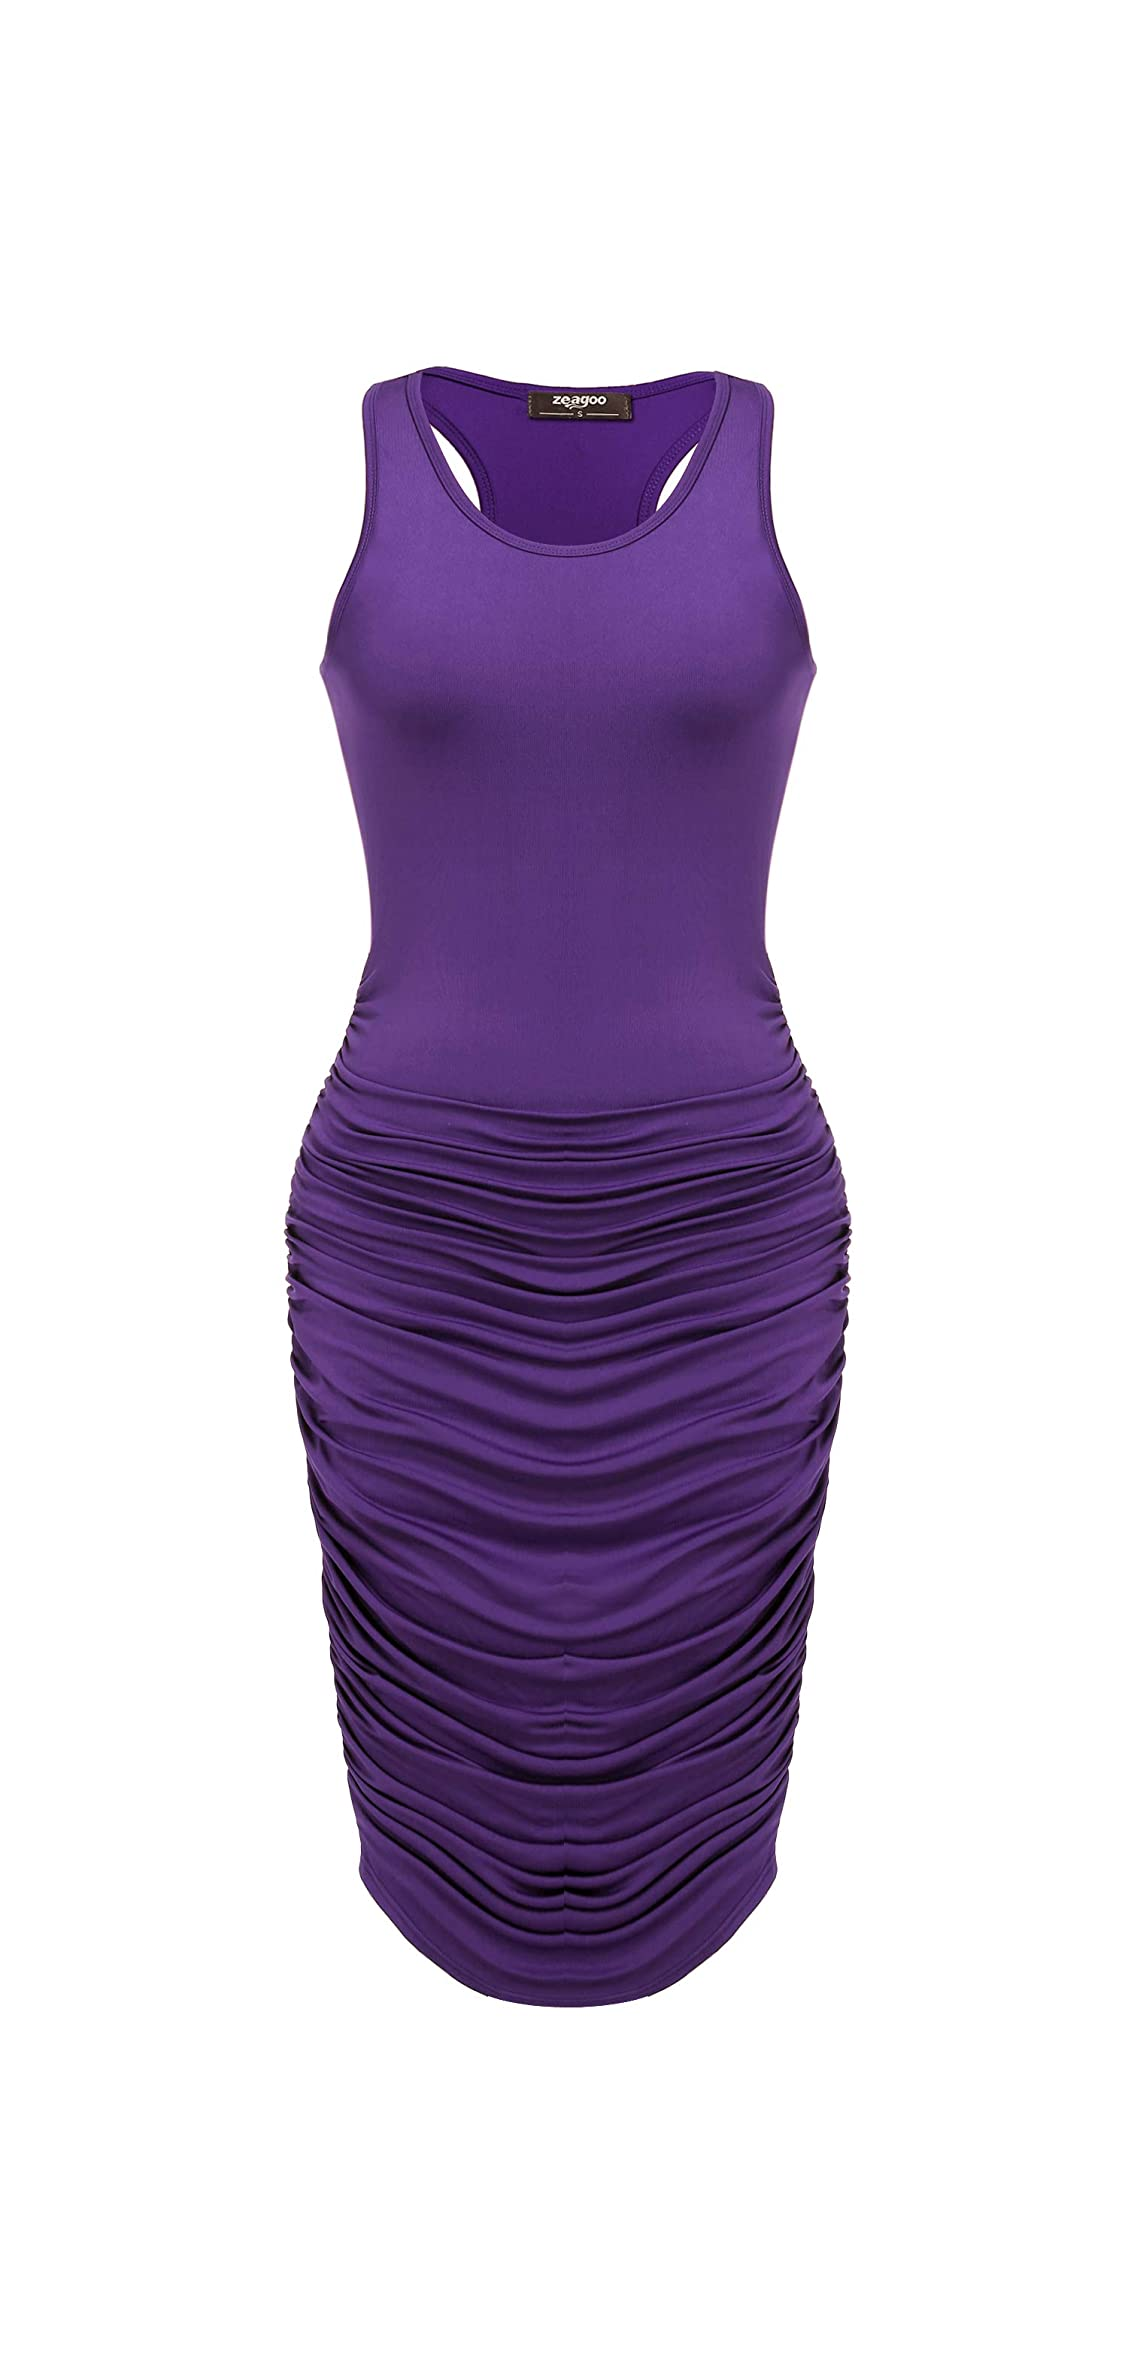 Ruched Bodycon Dress For Women, Midi Stretchy Sleeveless